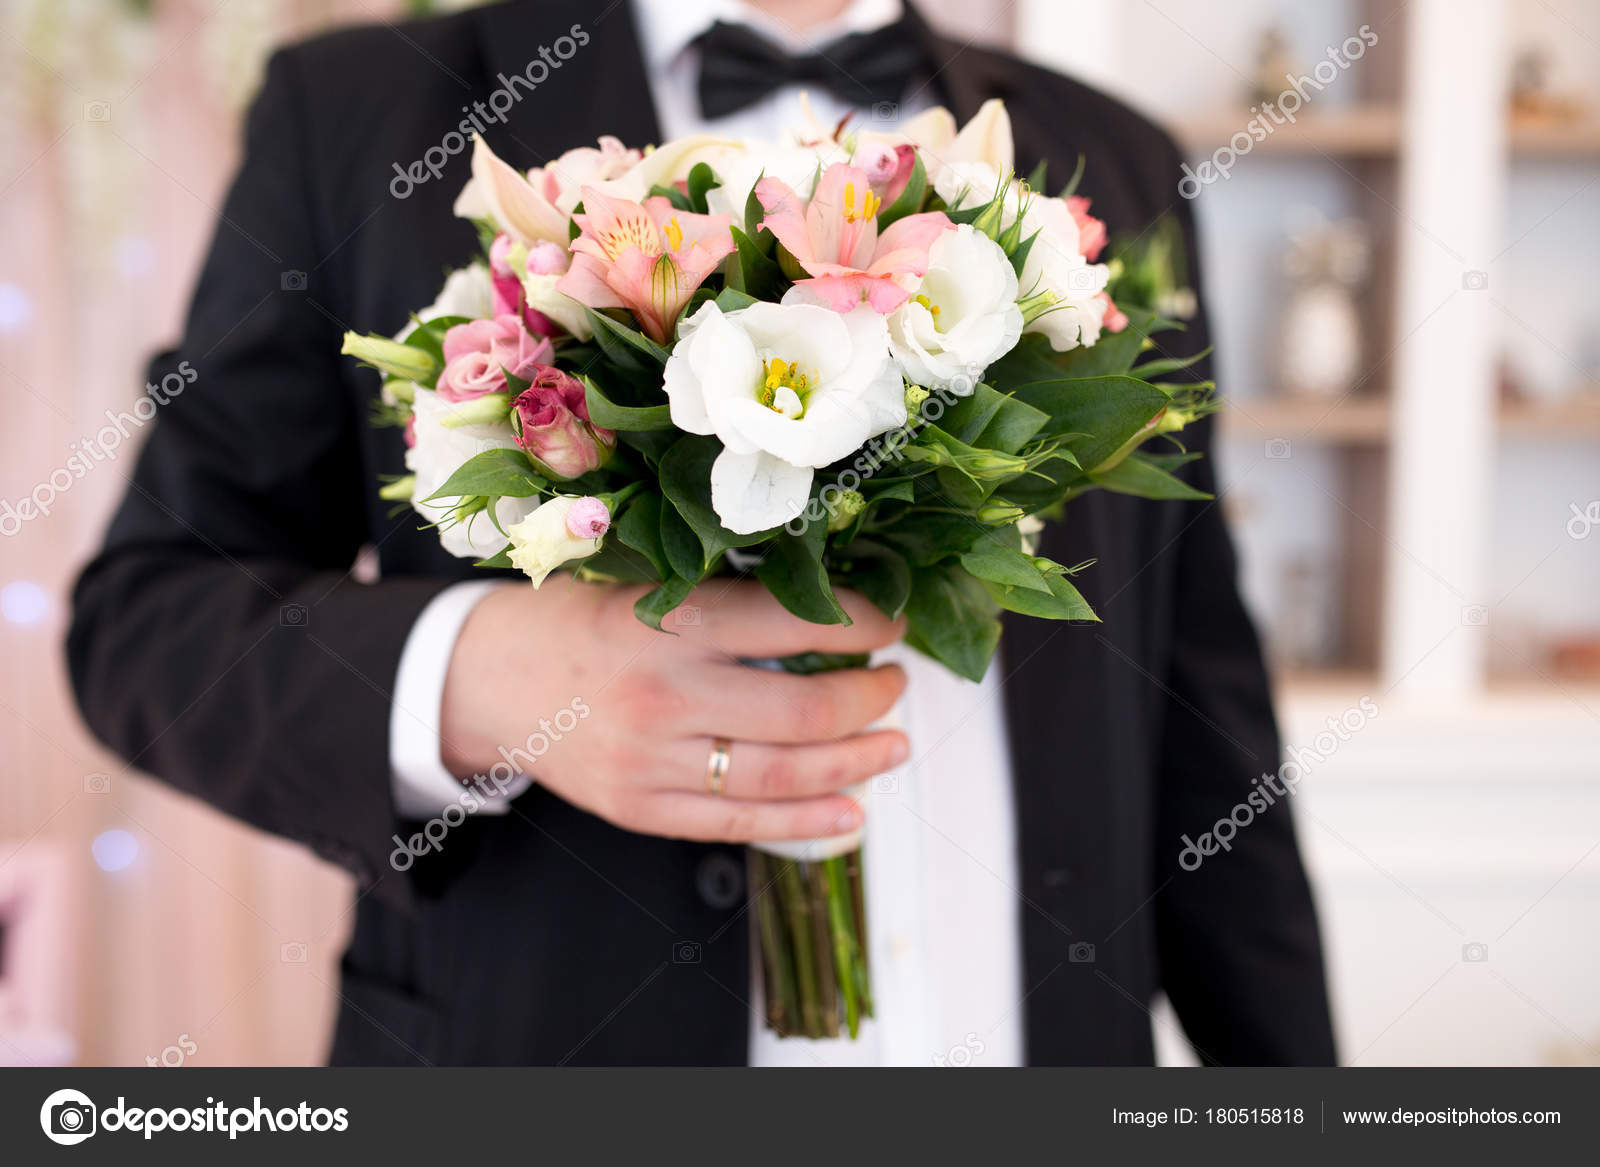 Man with flower bouquet stock photo olgaosa 180515818 man with flower bouquet stock photo izmirmasajfo